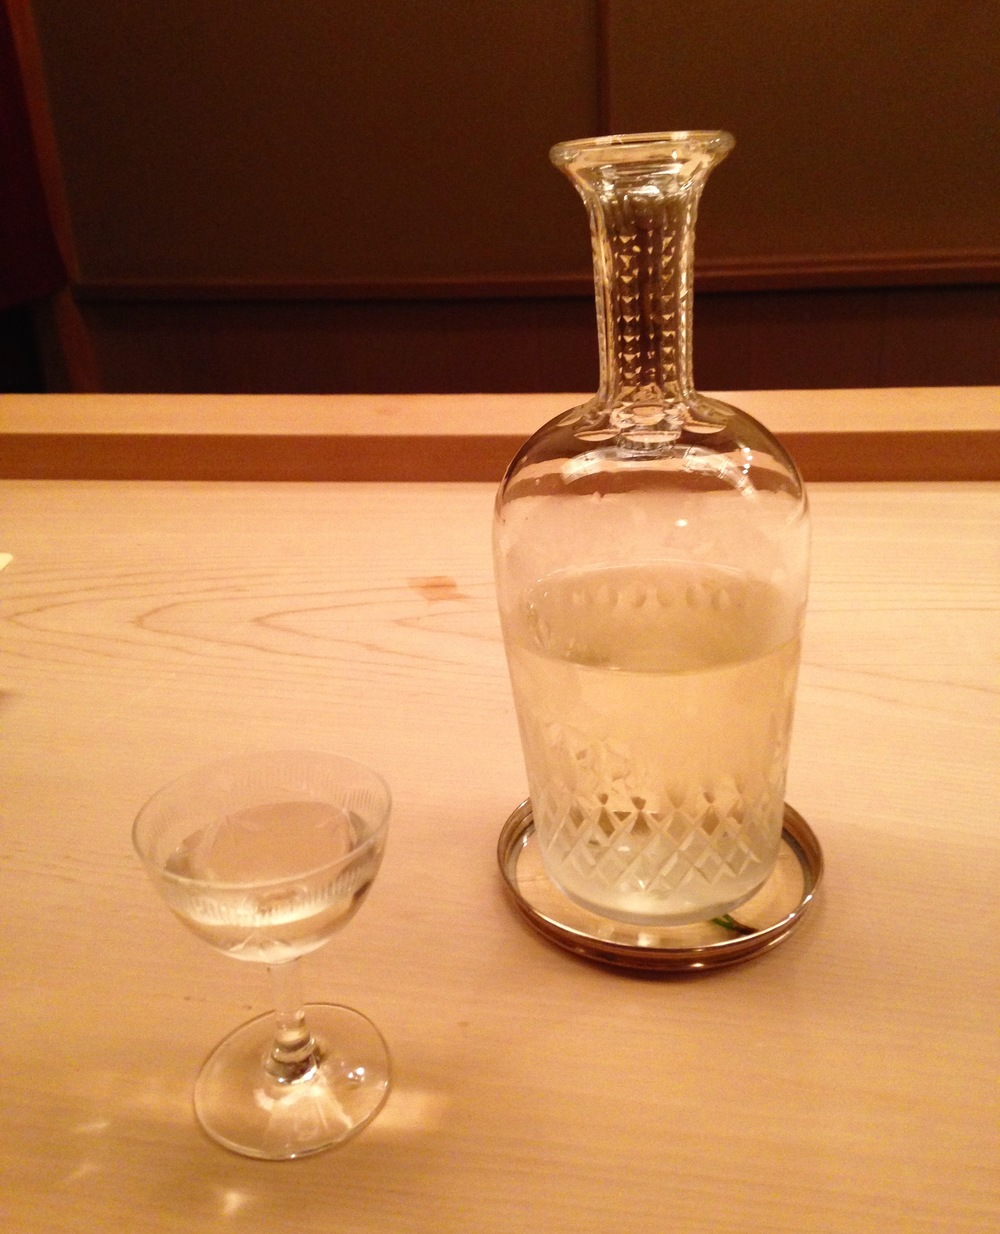 Daiginjo sake (don't know producer)